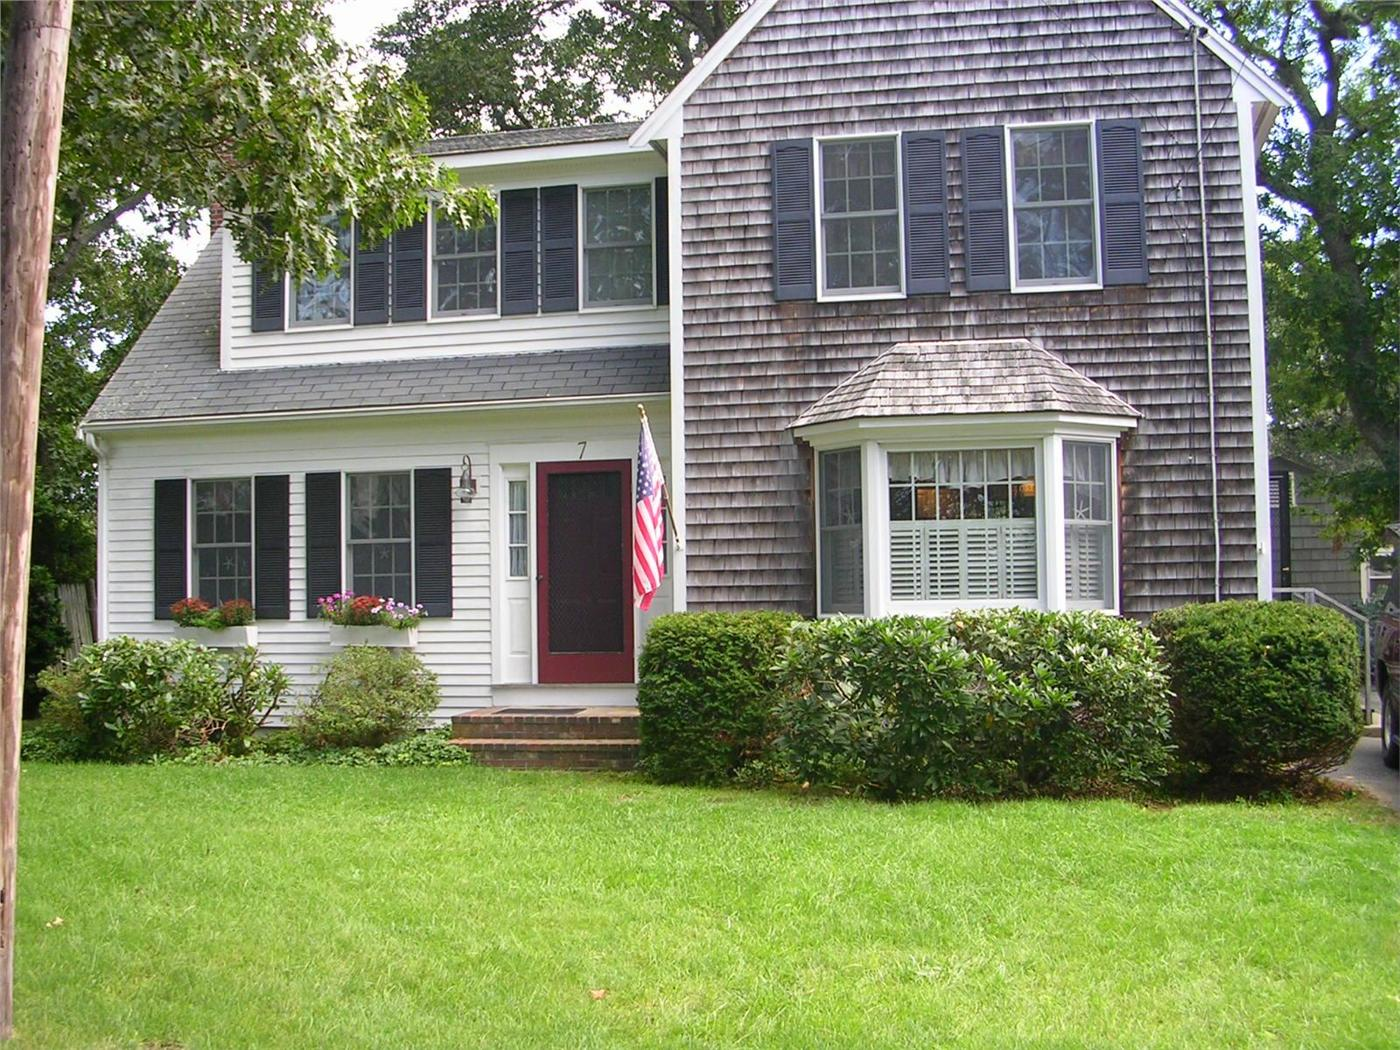 Harwich Vacation Rental home in Cape Cod MA 02646, 200 yards to Atlantic  Ave. Beach | ID 10772